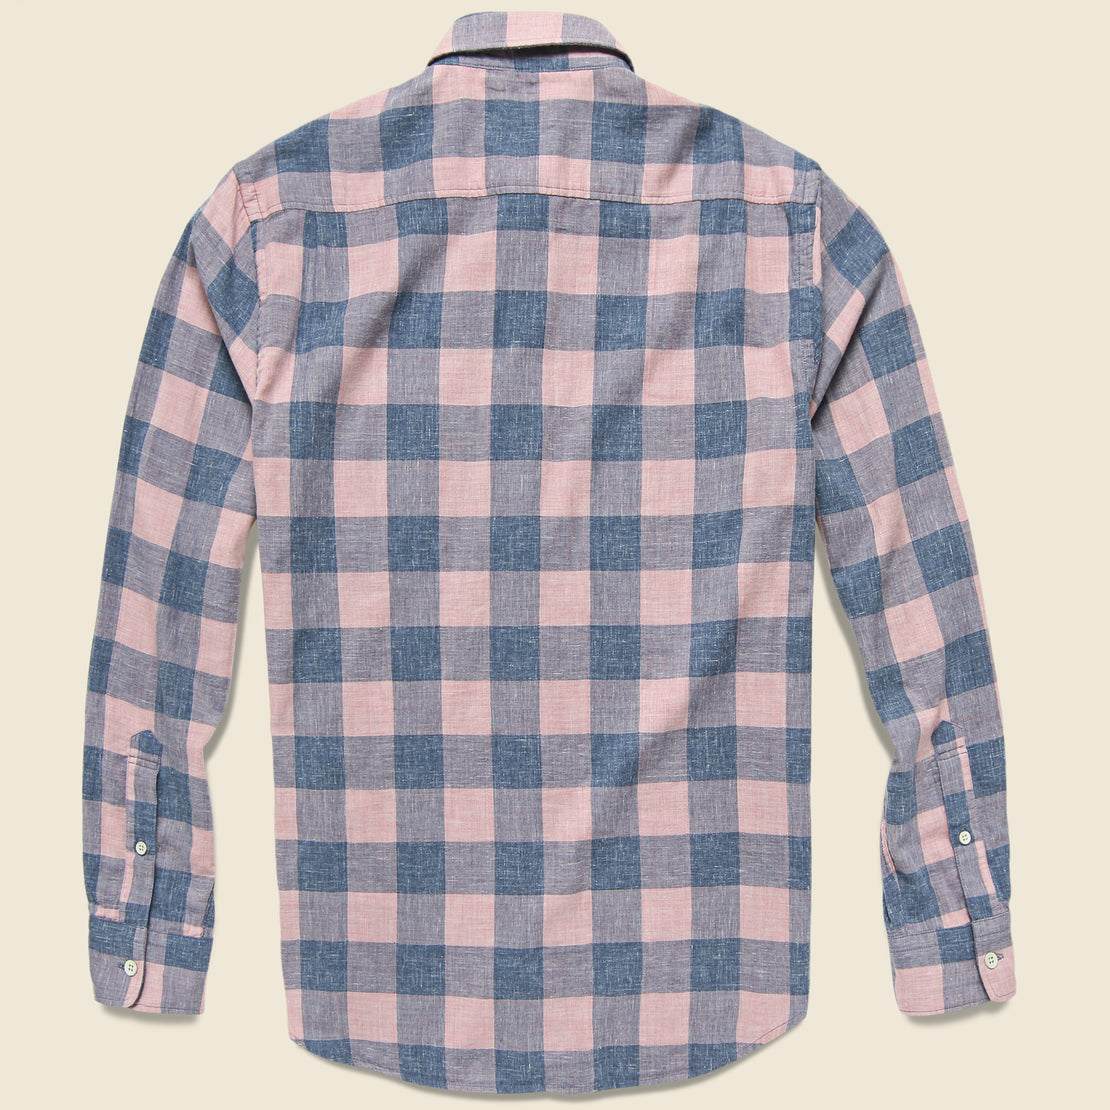 Doublecloth Seaview Shirt - Rose Buffalo Check